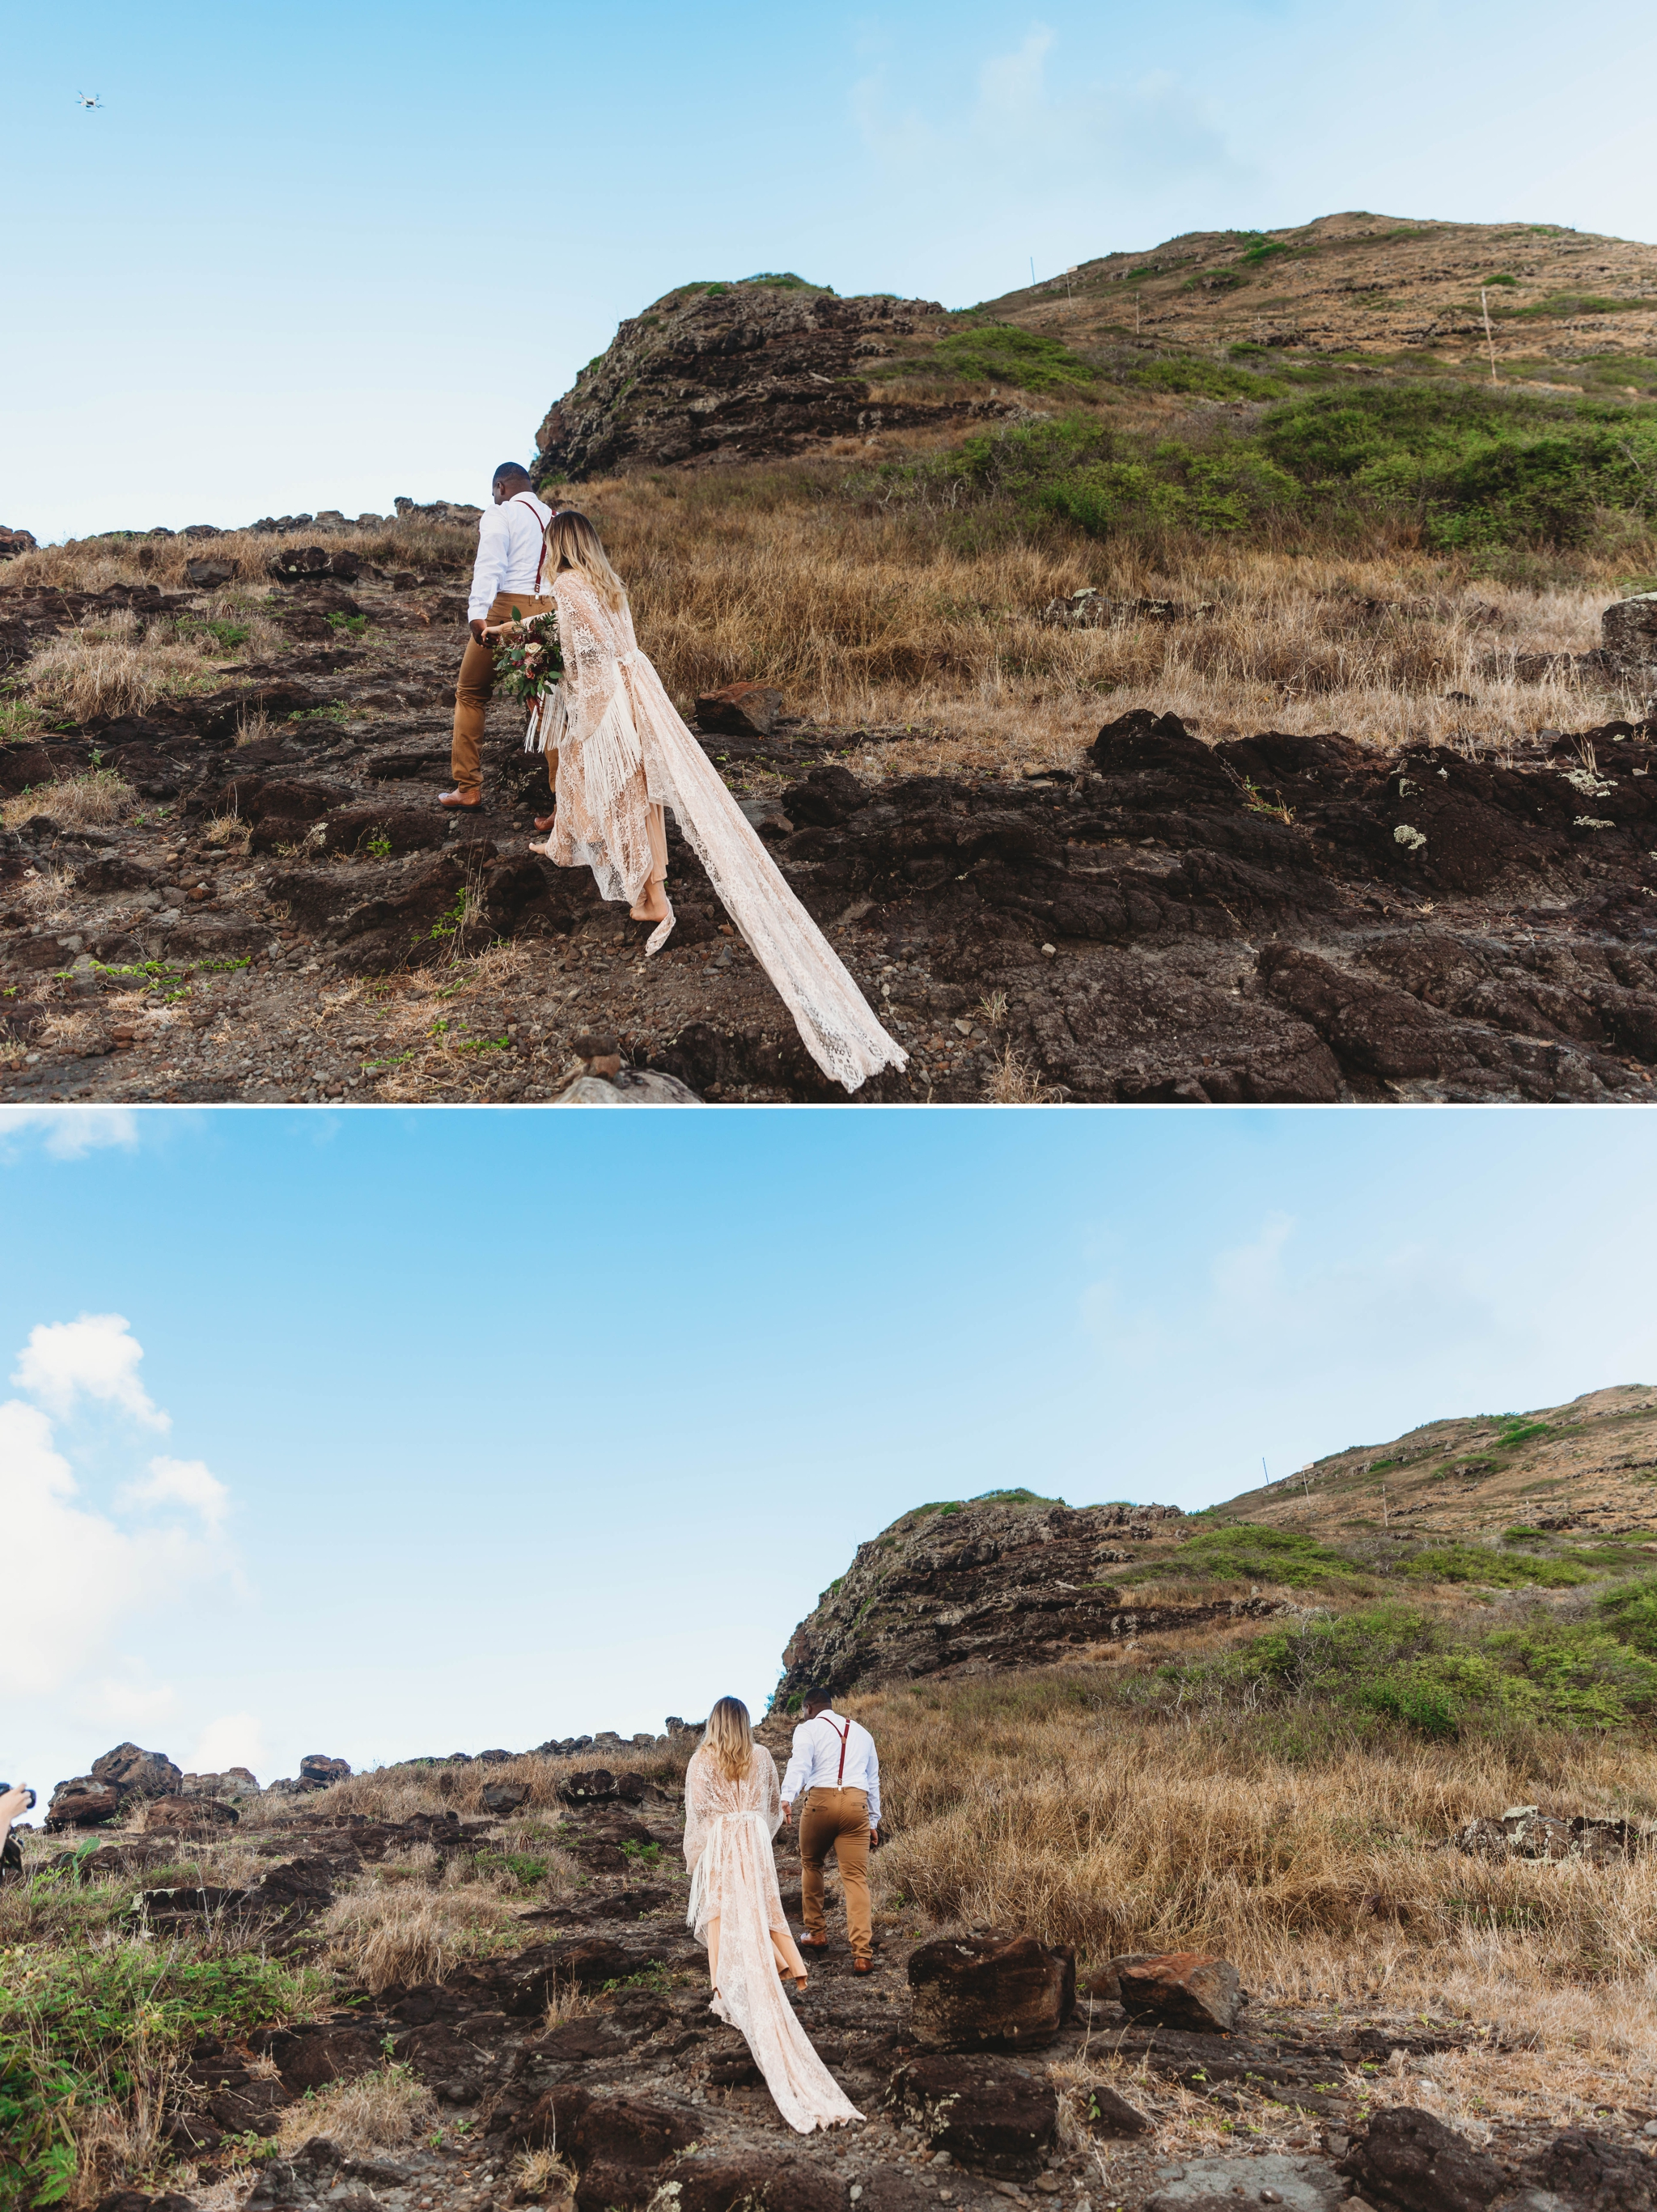 couple walking up the mountain - Elopement at Makapuu Lookout, Waimanalo, HI - Oahu Hawaii Engagement Photographer - Bride in a flowy fringe boho wedding dress - lanikai lookout - deutsche hochzeits fotografin in hawaii - smal1 - dark and moody - true to live